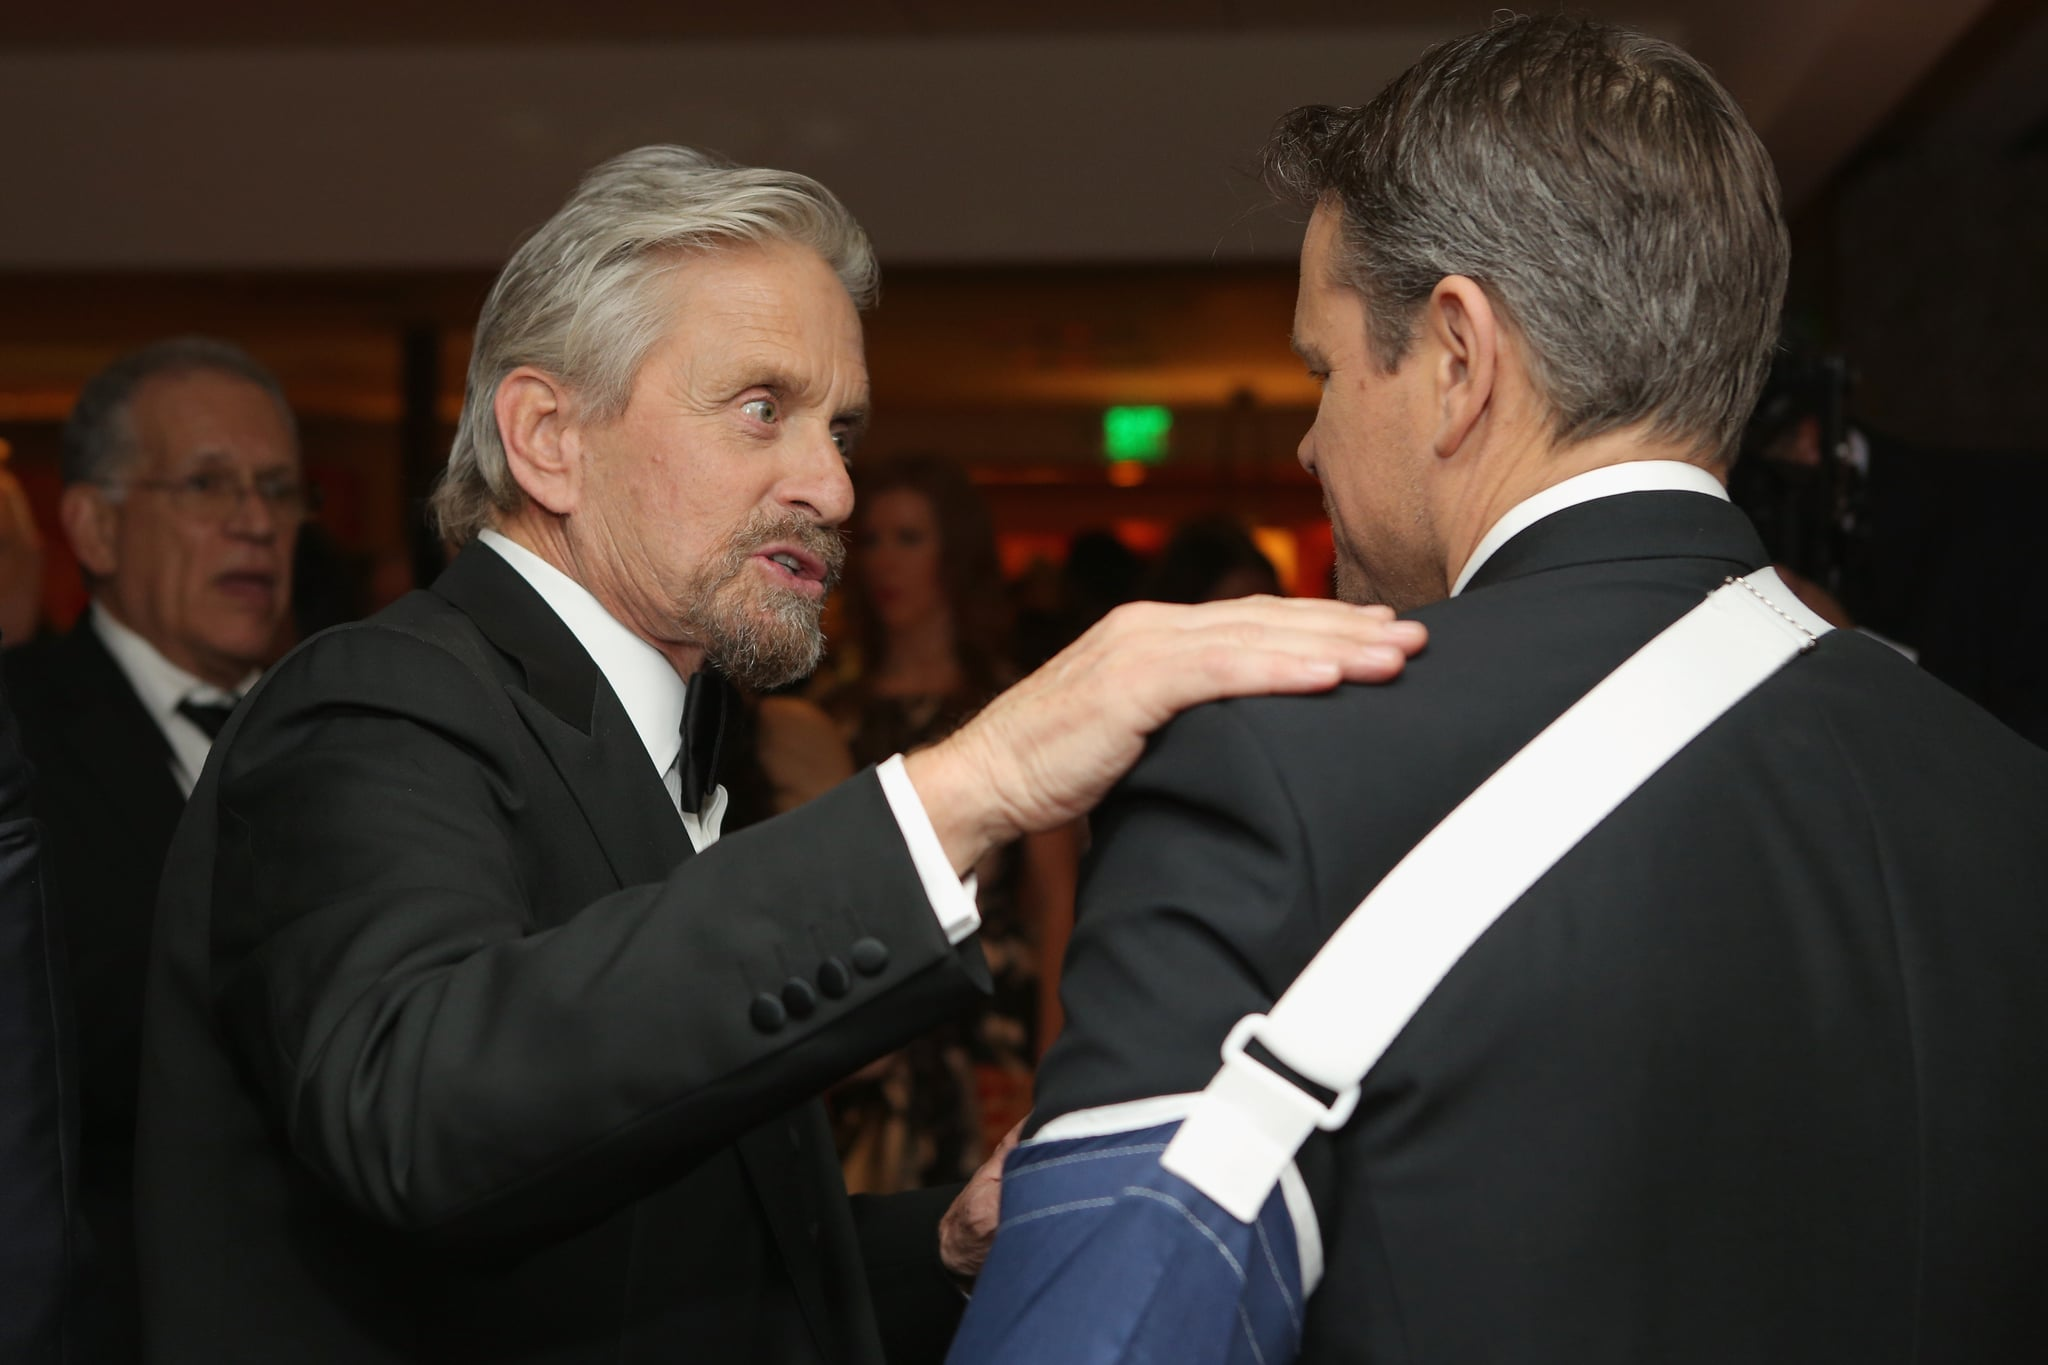 Michael Douglas and Matt Damon had a chat inside.